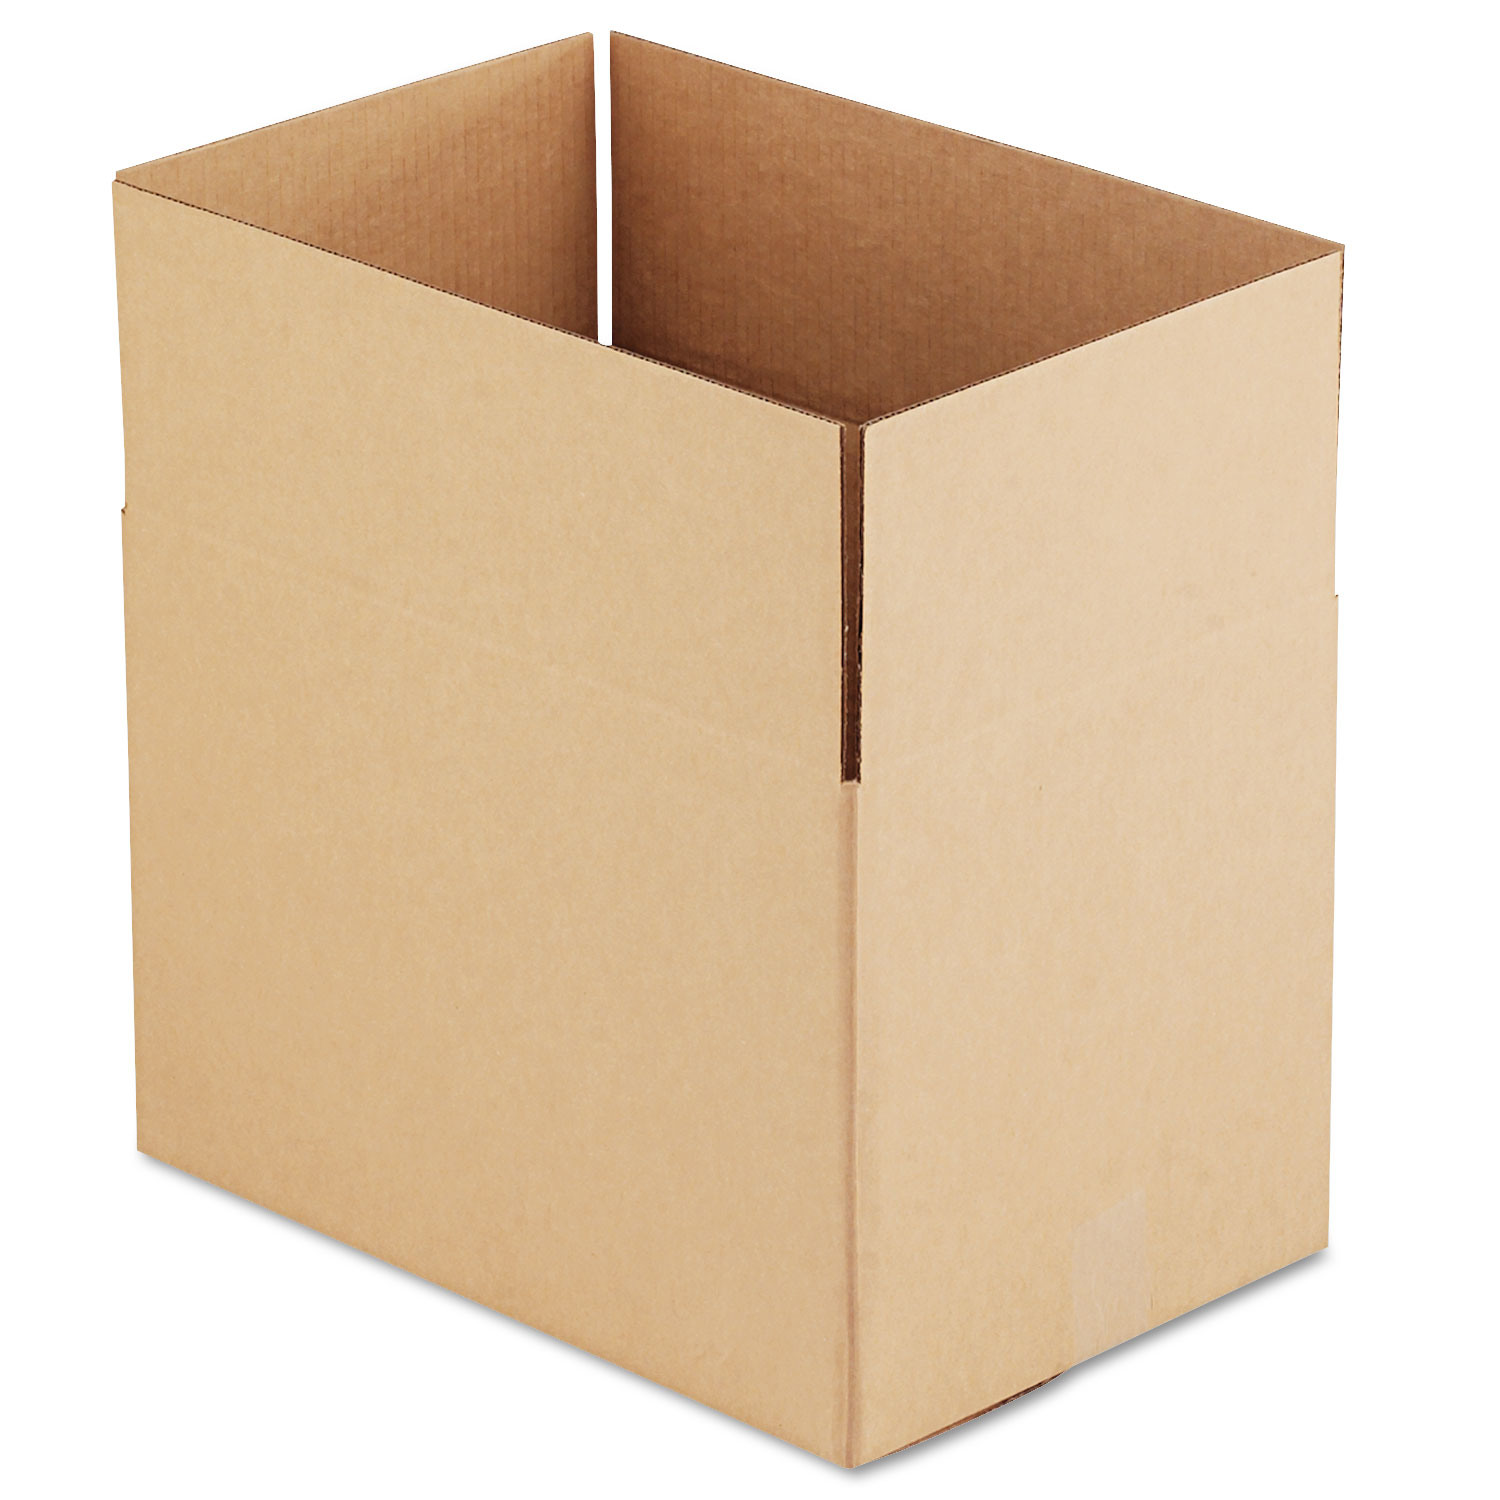 """Fixed-Depth Shipping Boxes, Regular Slotted Container (RSC), 18"""" x 12"""" x 12"""", Brown Kraft, 25/Bundle"""